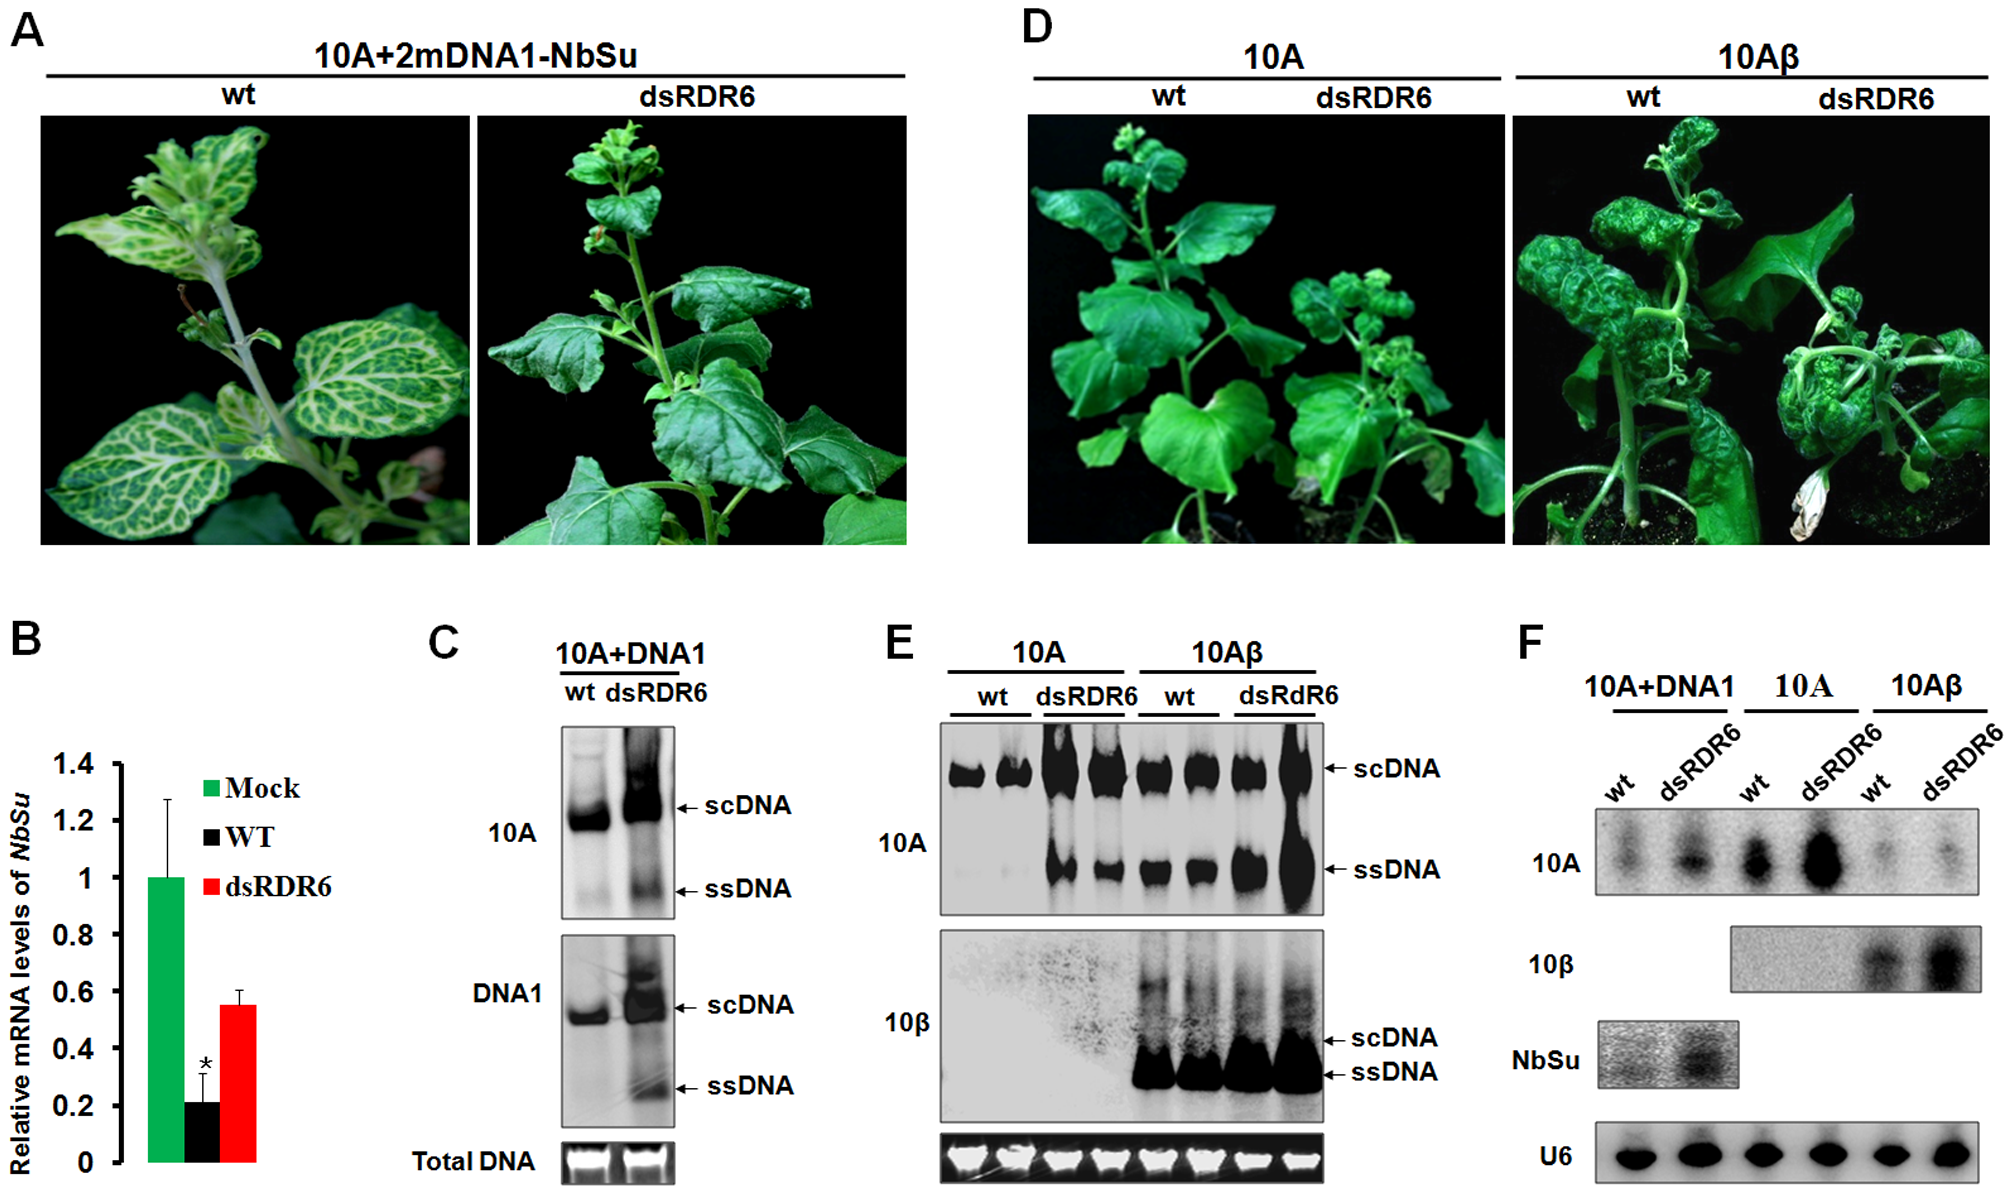 Compromised VIGS efficiency and enhanced susceptibility to TYLCCNV infection in RDR6-deficient <i>Nicotiana benthamiana</i> plants.